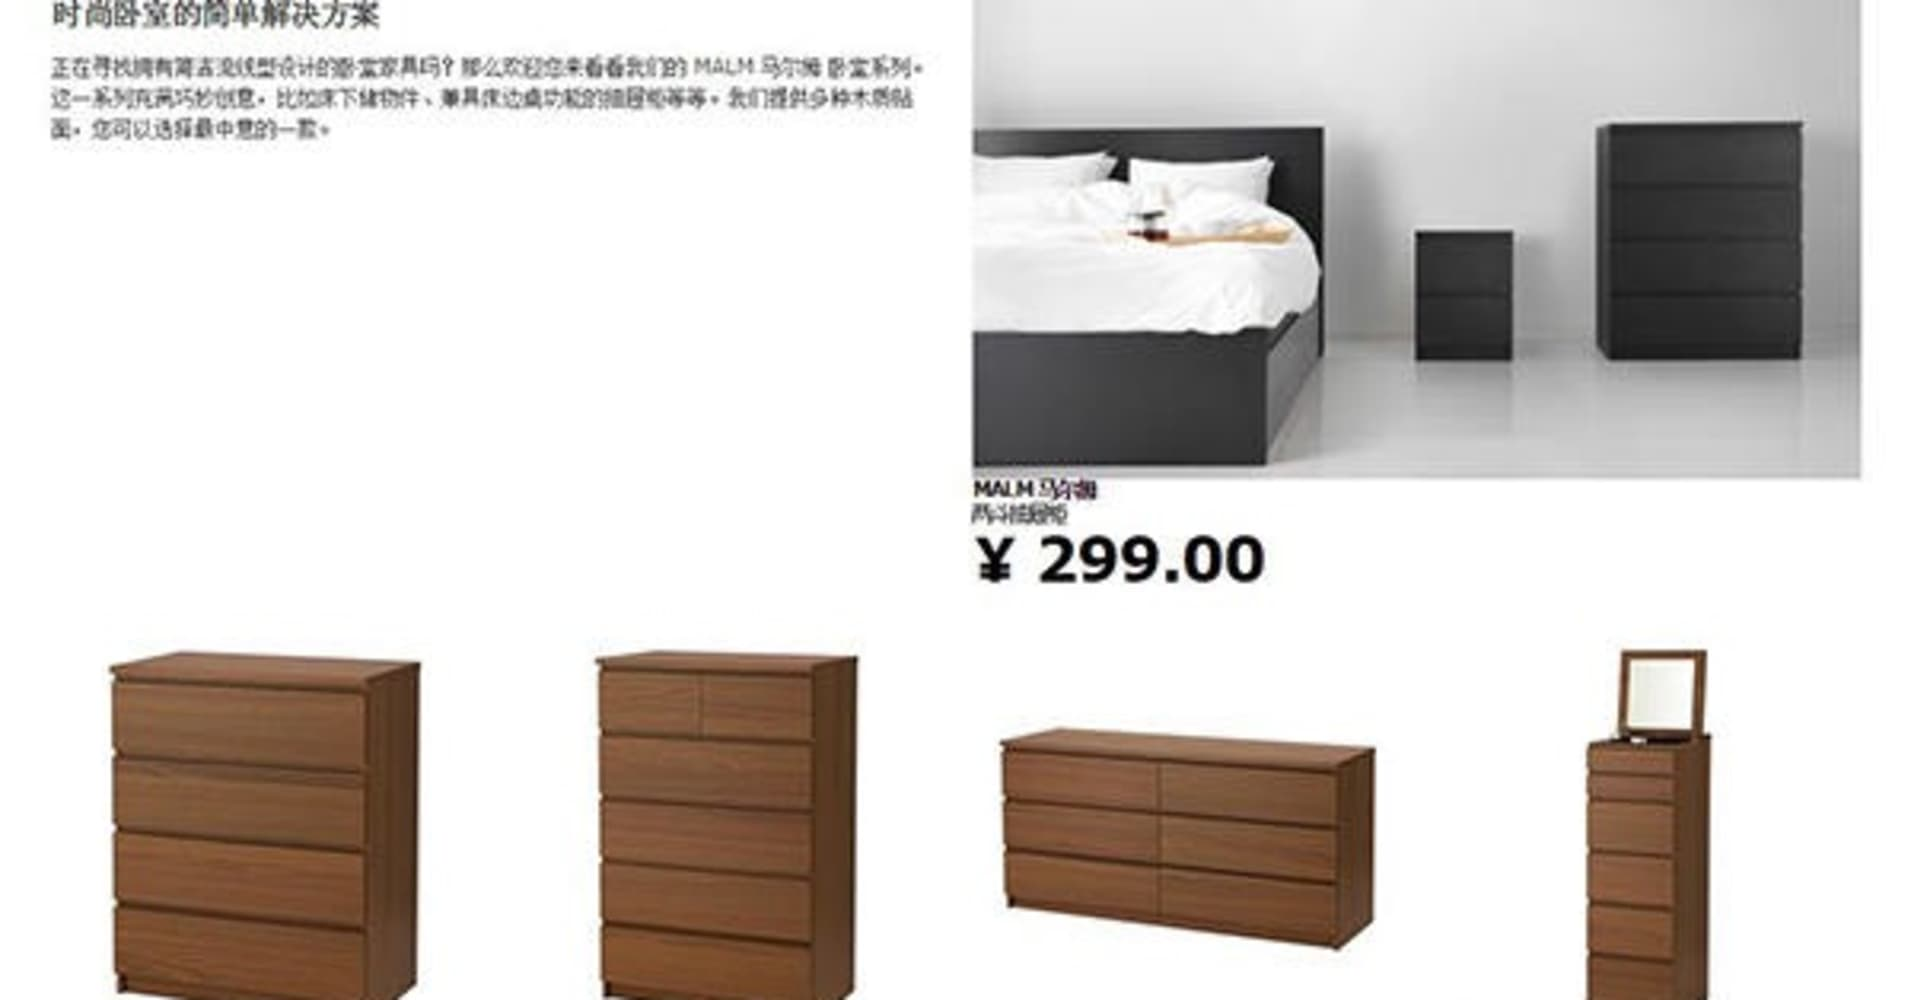 pics Ikea recalls Malm dresser and offers refunds